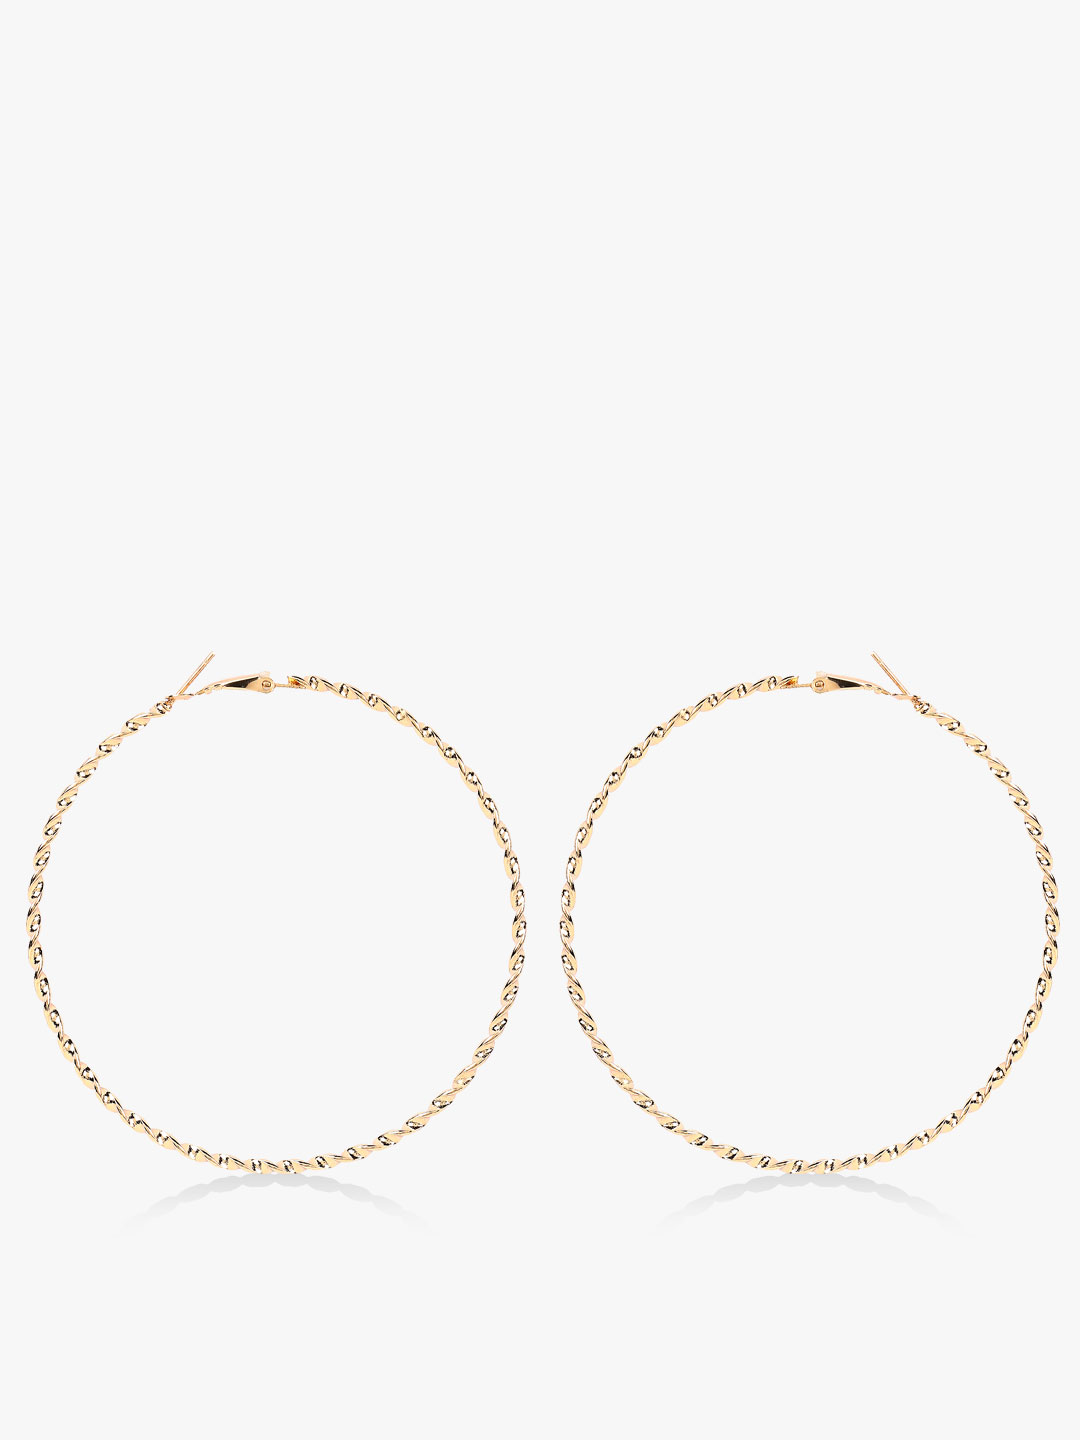 Style Fiesta Gold Large Braided Hoops 1